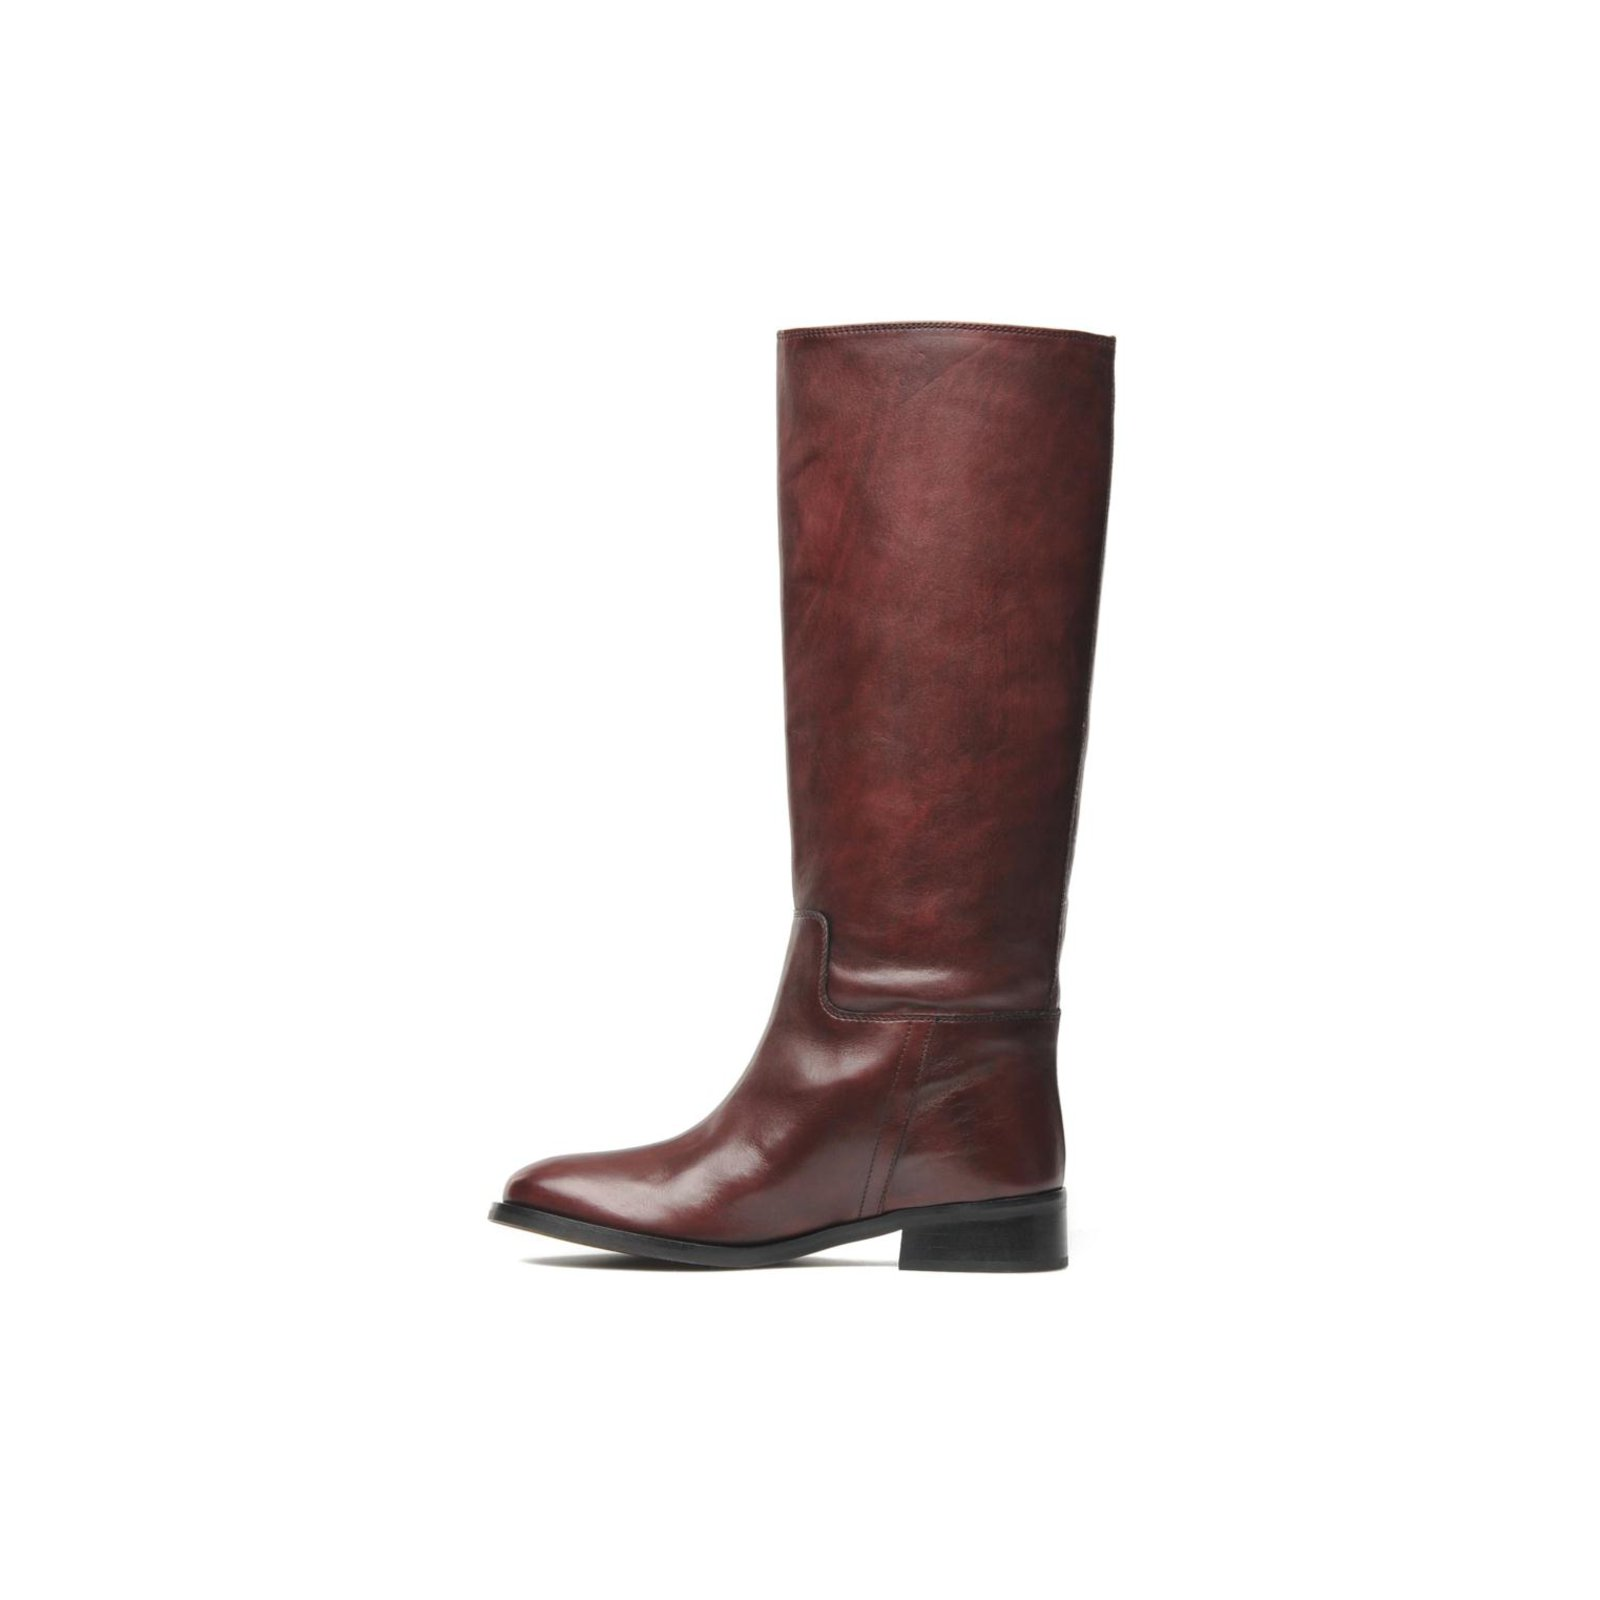 Autre Marque JONAK Boots Boots Leather Dark red ref.45337